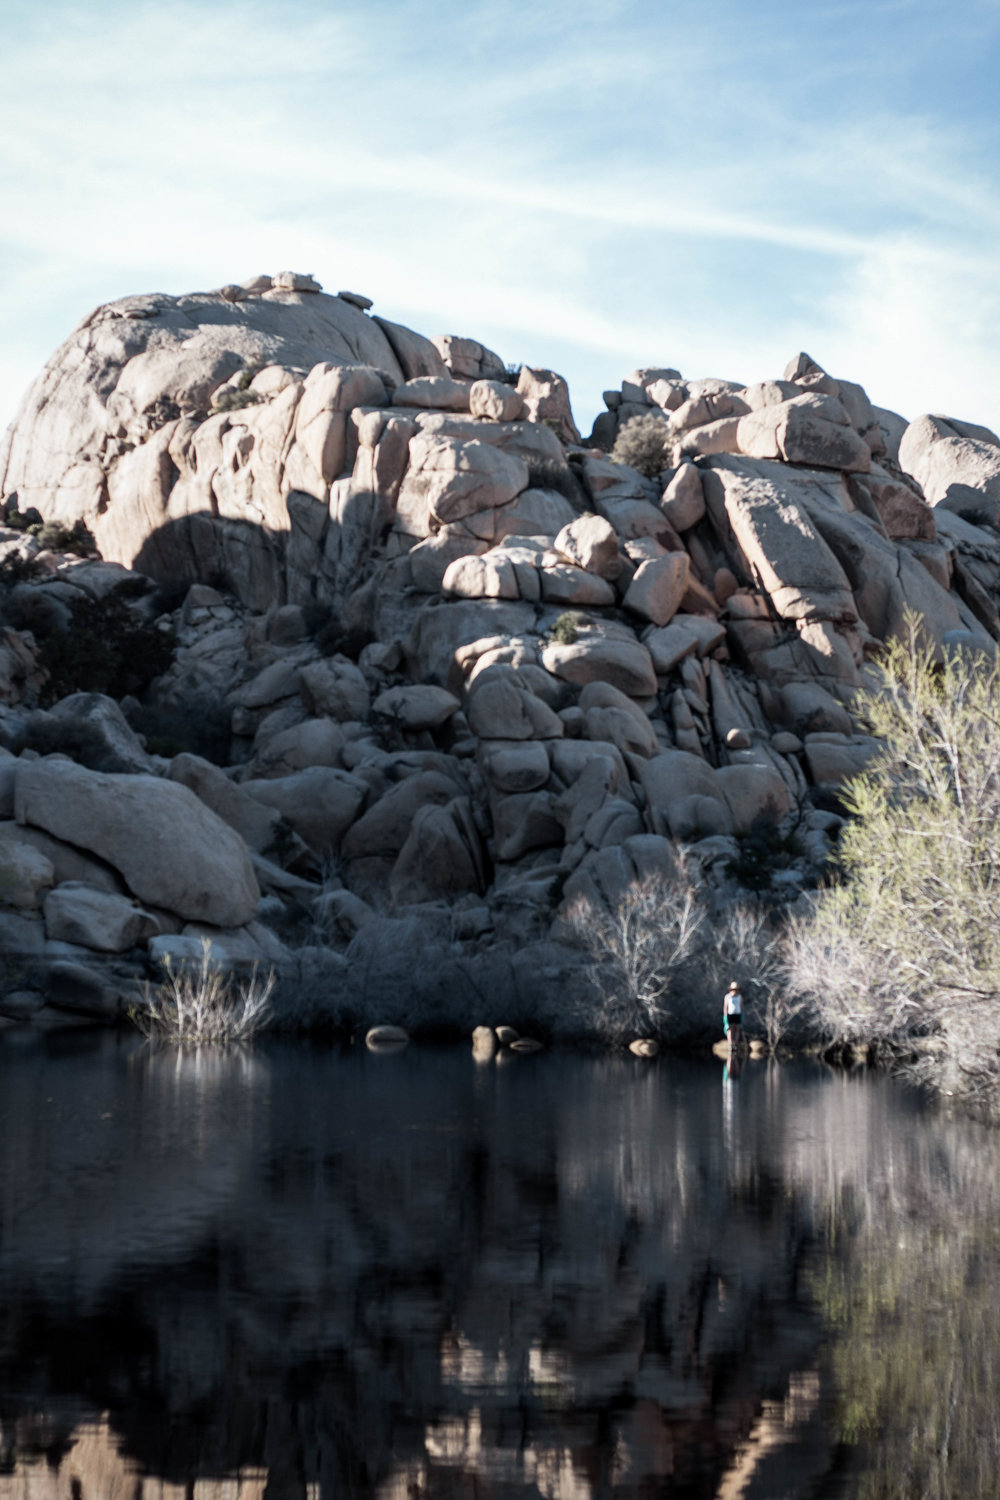 unsettle-co-lifestyle-blog-spaces-joshua-tree-national-park-rock-formation-3